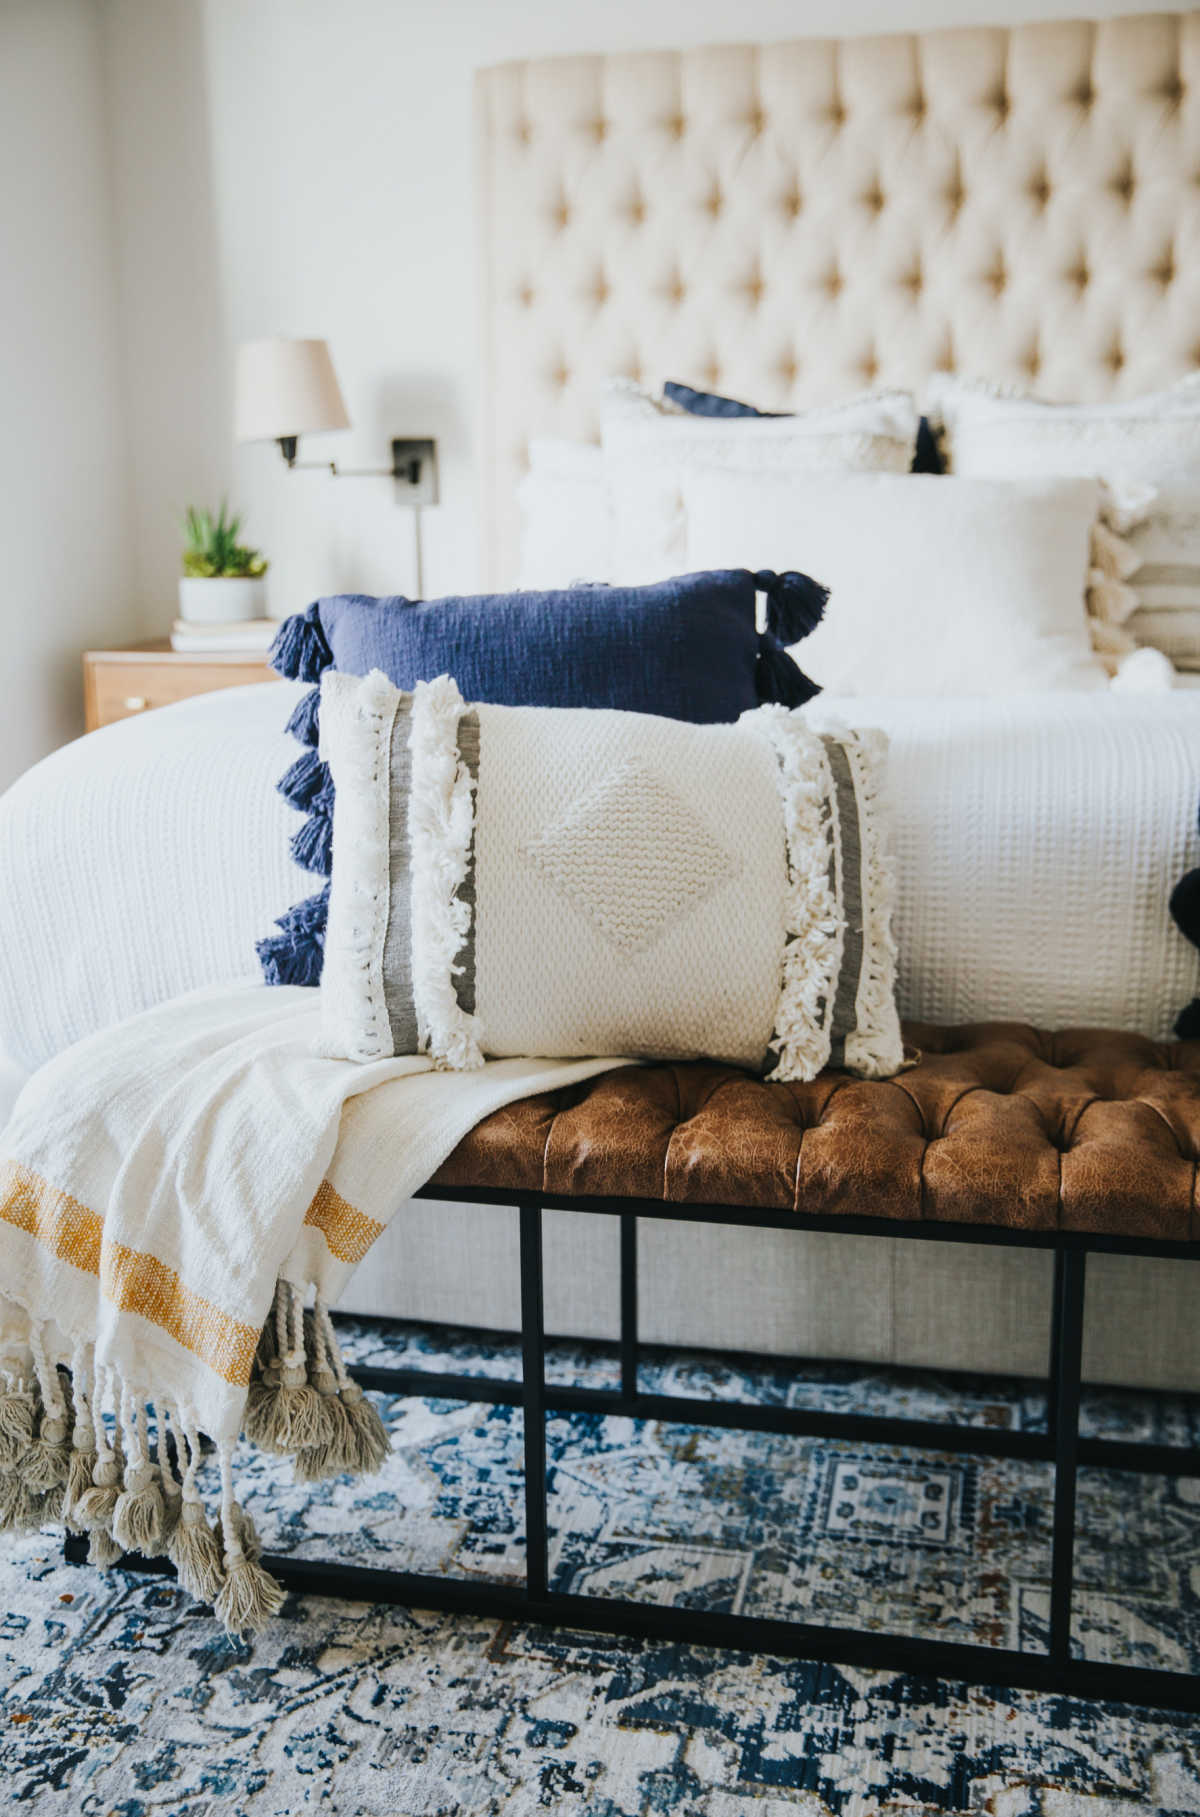 DECOATE HOME FREE PILLOWS